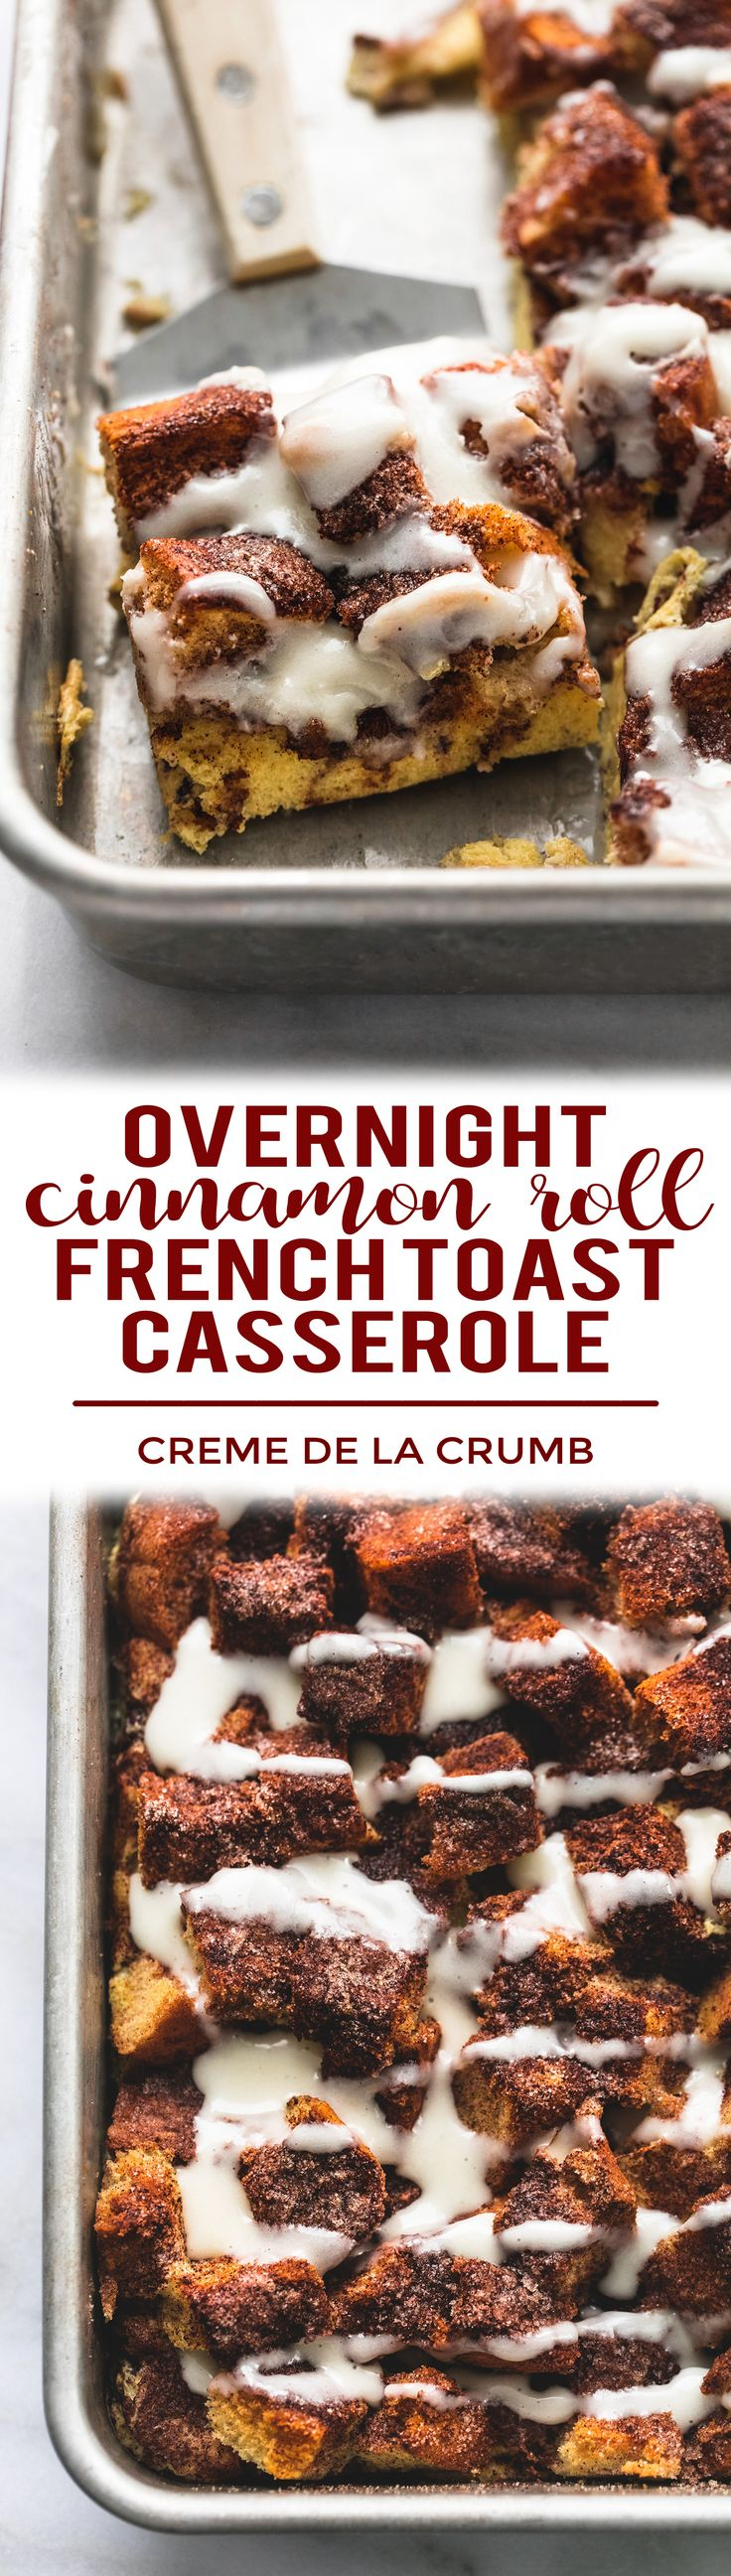 Overnight Overnight Cinnamon Roll French Toast Casserole combines the best parts about cinnamon rolls and French toast into an easy make-ahead breakfast!   lecremedelacrumb.com